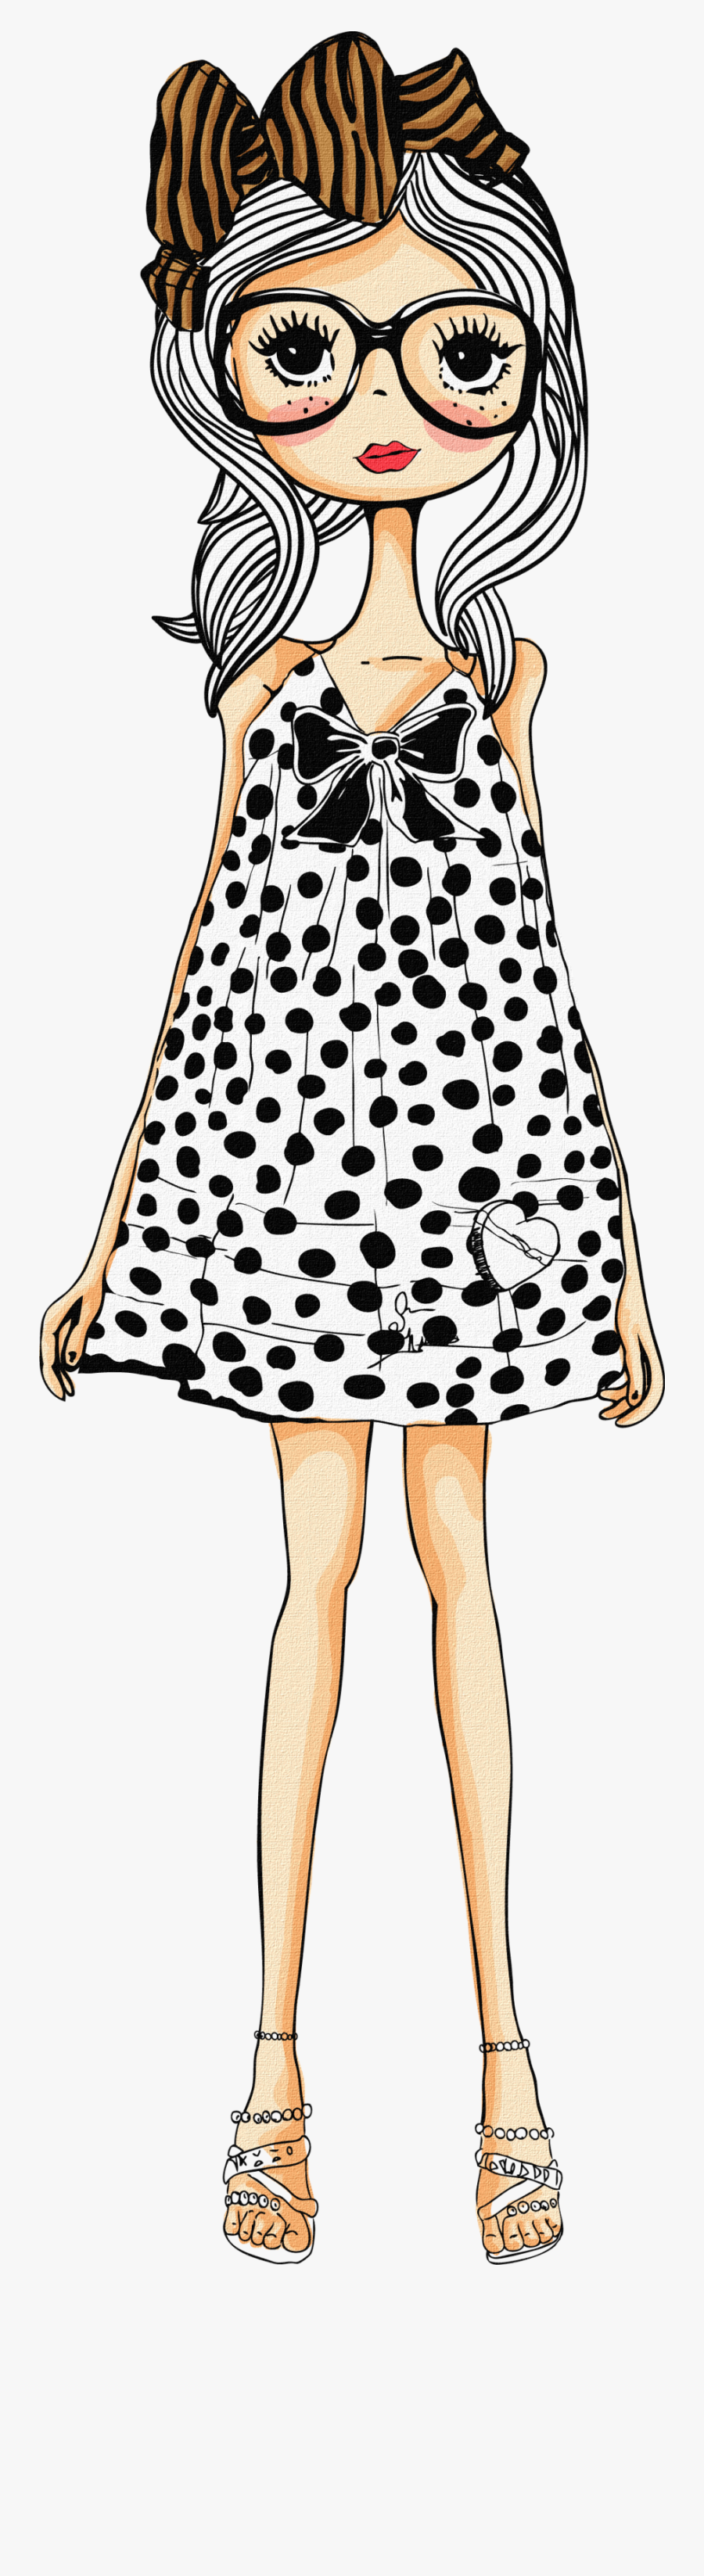 Doll Png By Julii - Best Friend Cartoon Images Girls, Transparent Clipart